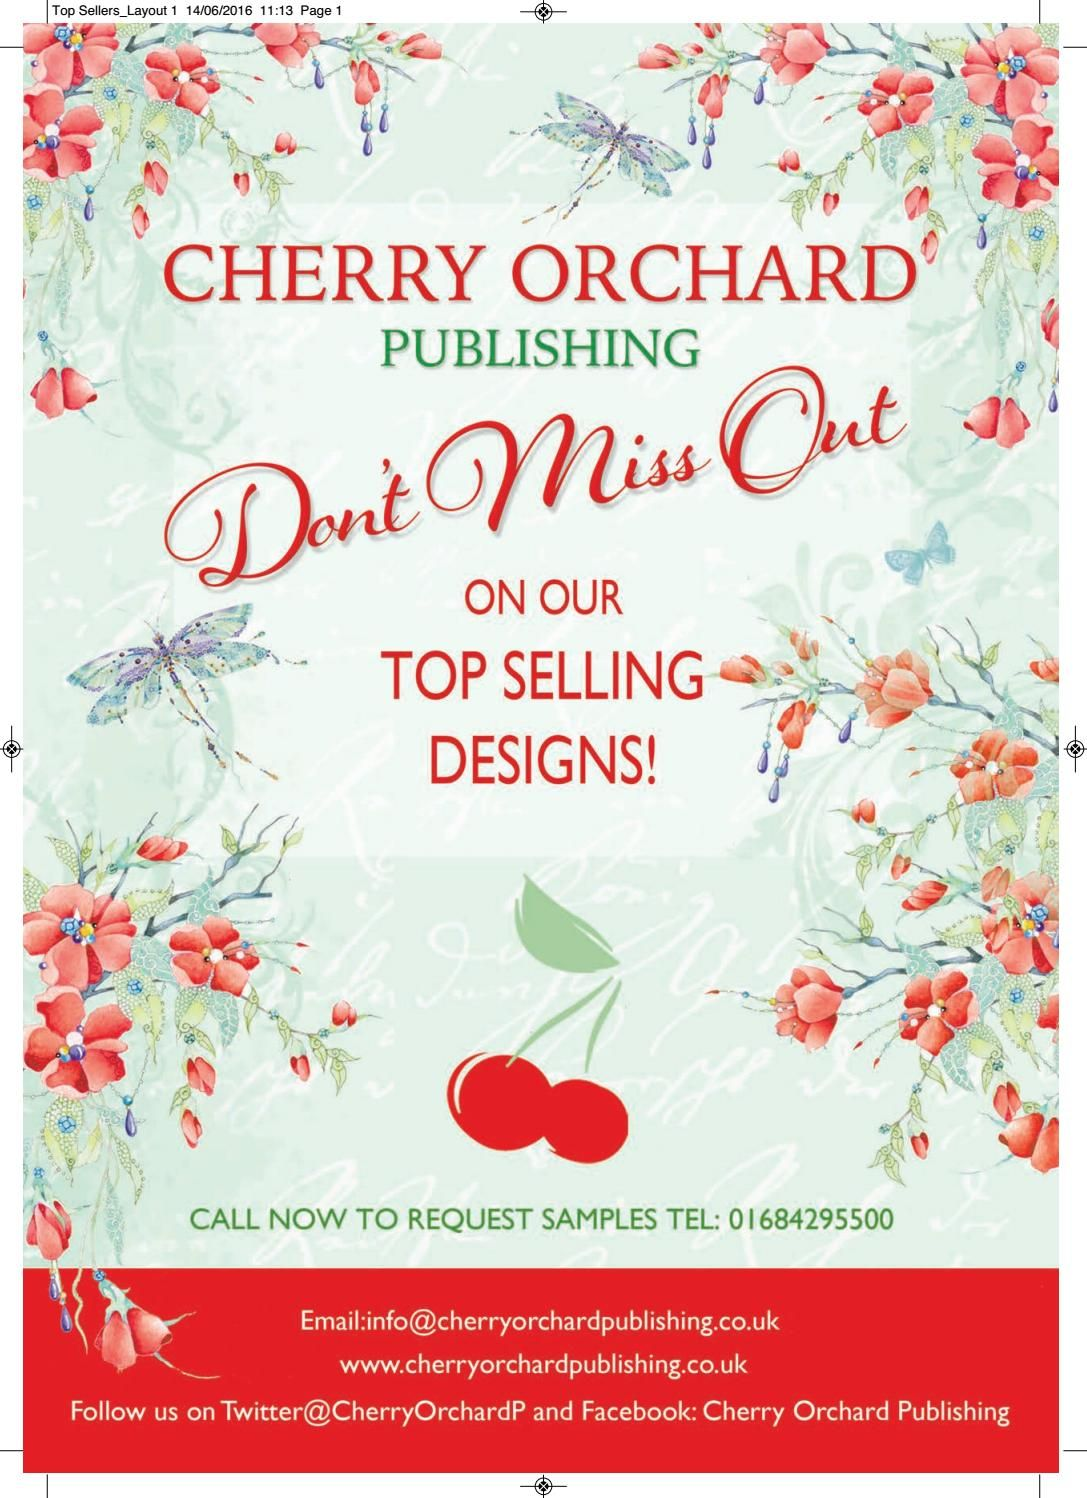 Top Selling Greeting Card Designs From Cherry Orchard Greetings